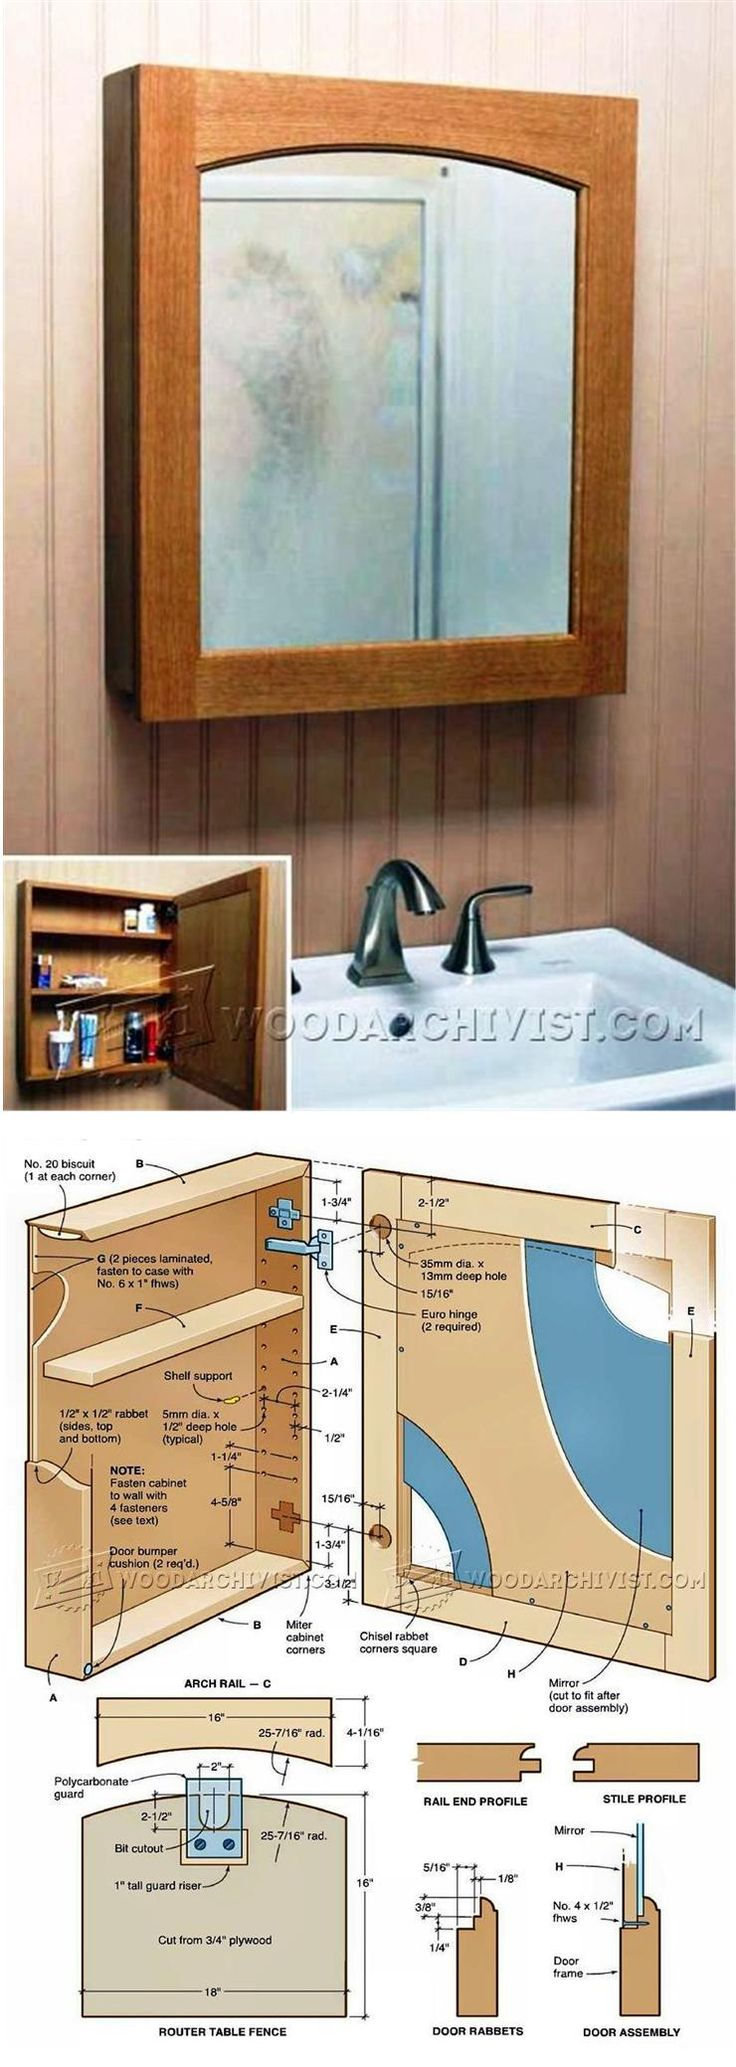 Classic Medicine Cabinet Plans - Furniture Plans and Projects | WoodArchivist.com